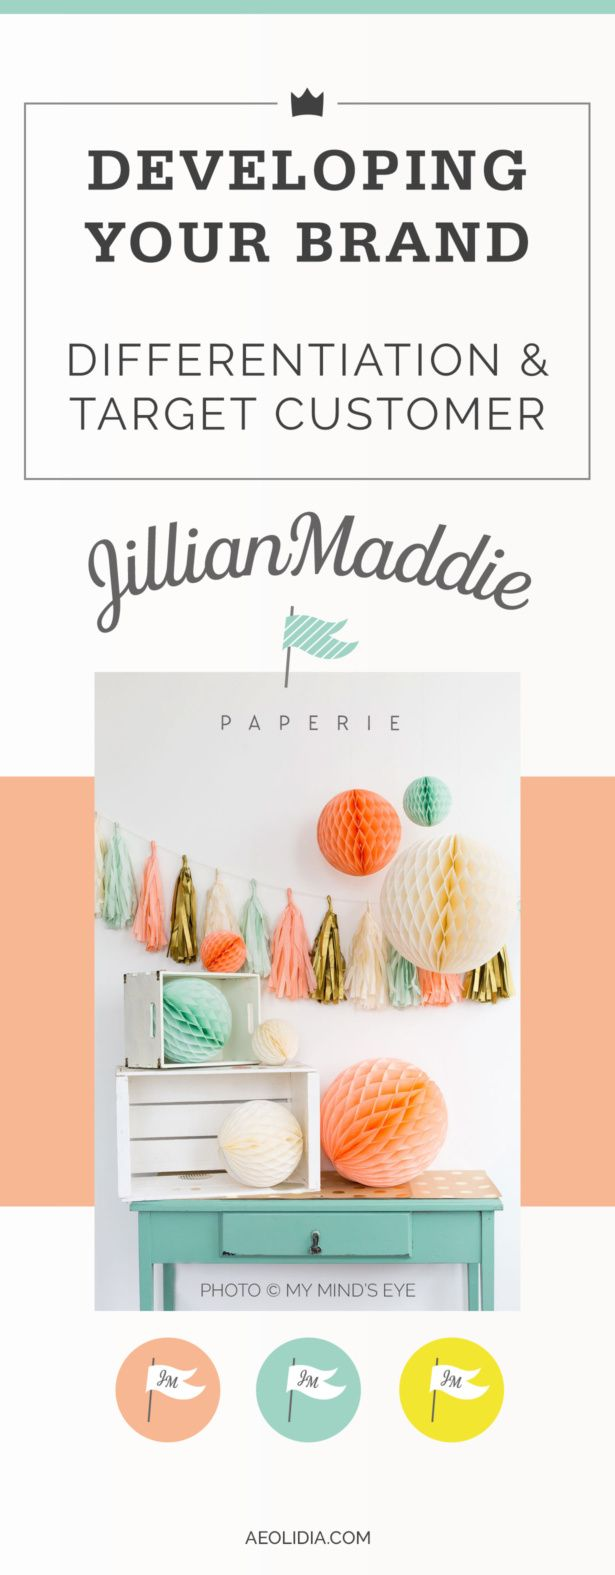 JillianMaddie Paperie is a new paper, packaging and party supply business. We worked to help differentiate this brand with a unique selling proposition, and to define a target customer profile. Click to read more, or save this pin to read later! http://aeolidia.com/understand-your-business/?utm_campaign=coschedule&utm_source=pinterest&utm_medium=Aeolidia&utm_content=Understand%20Your%20Business%3A%20JillianMaddie%20Paperie